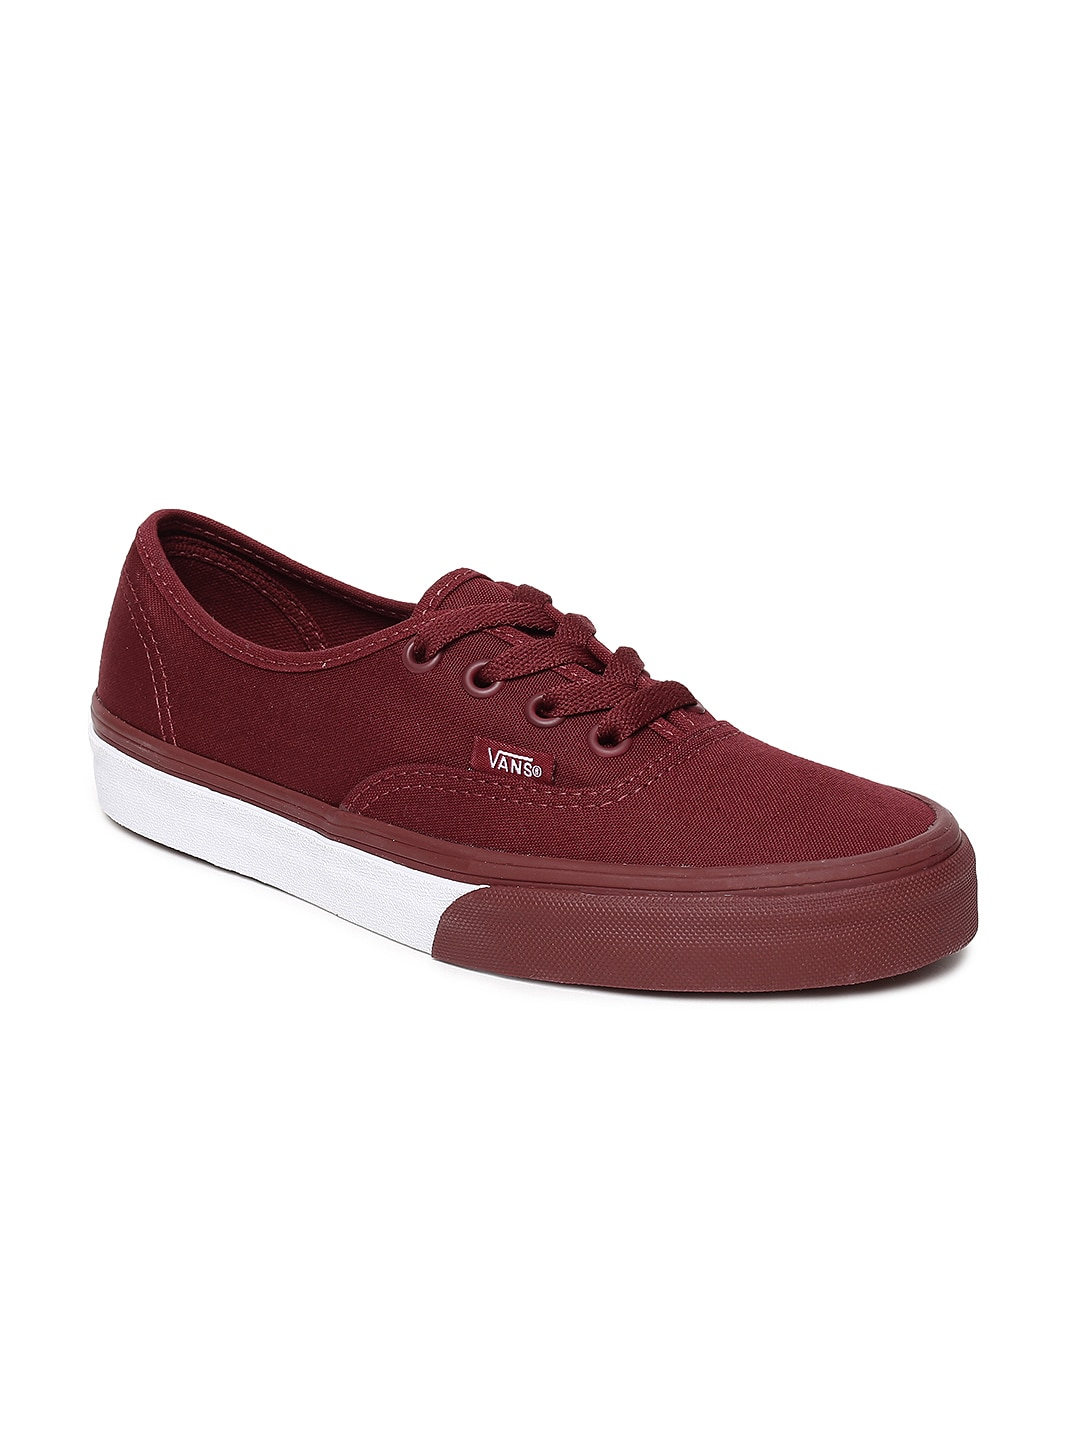 bb5c6d42b3 Vans Canvas Shoes - Buy Vans Canvas Shoes Online in India